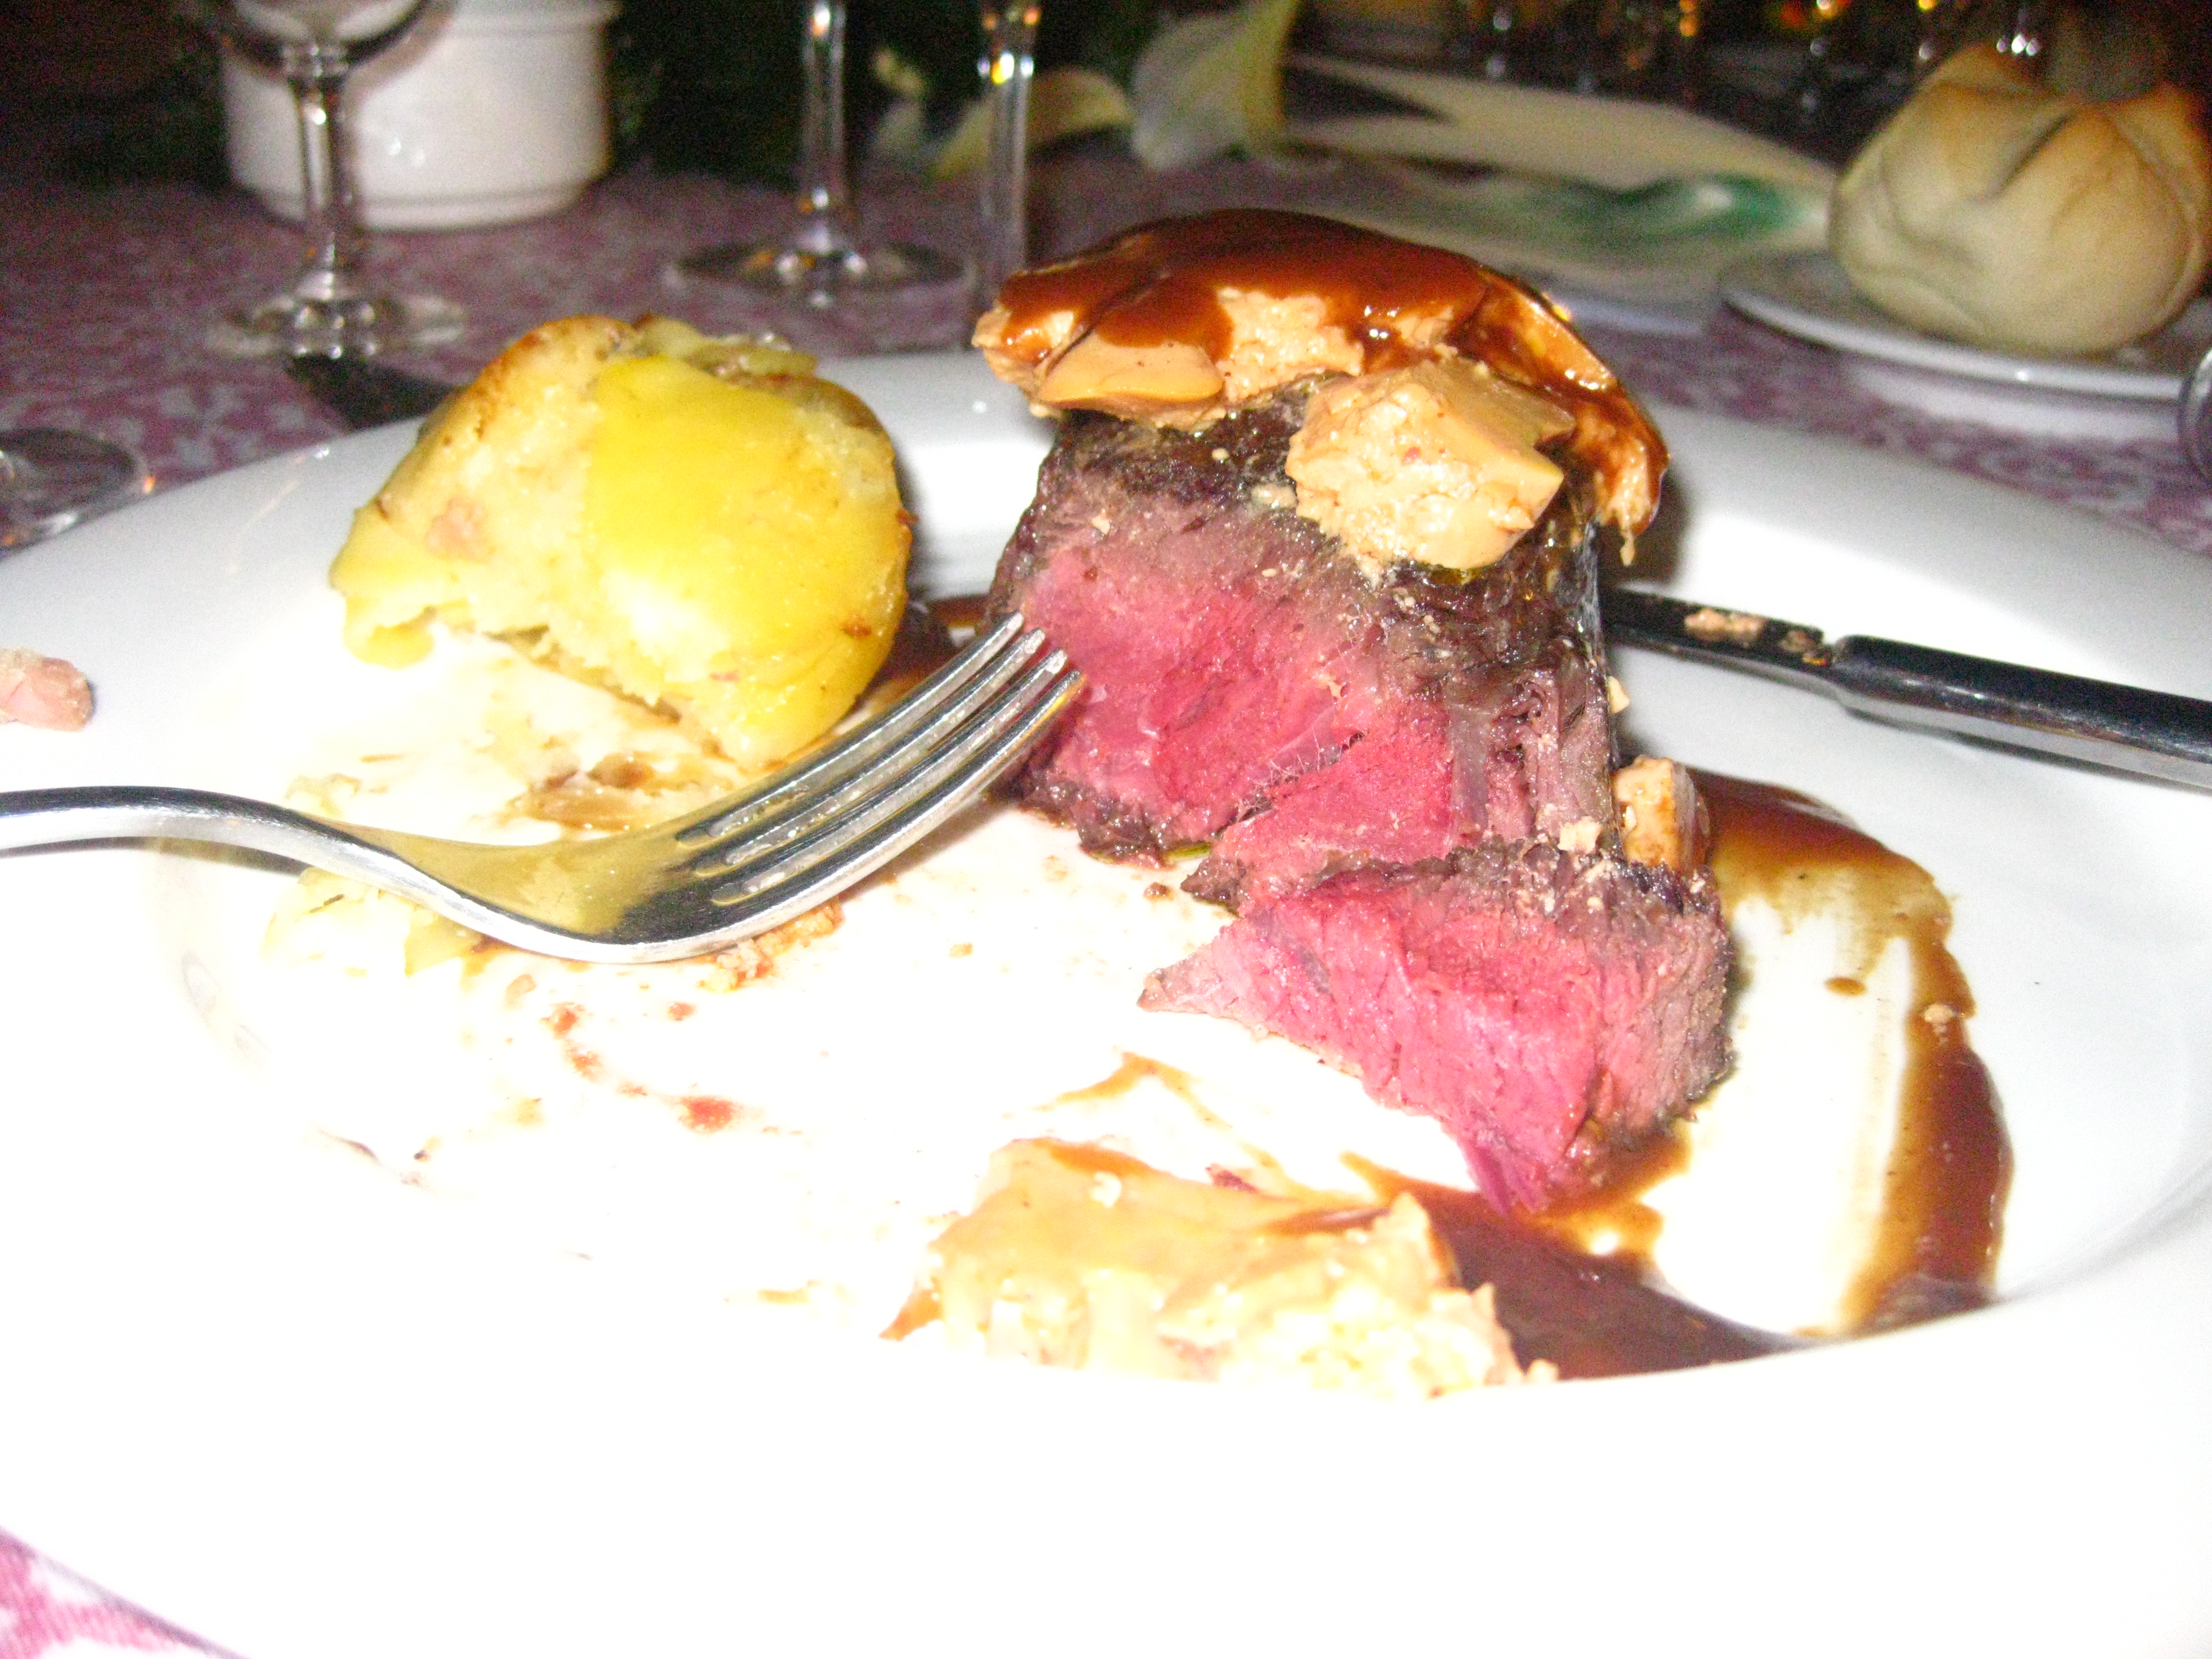 The main course was an absolutely divine fillet mignon with foie gras and bacon and potato cake.